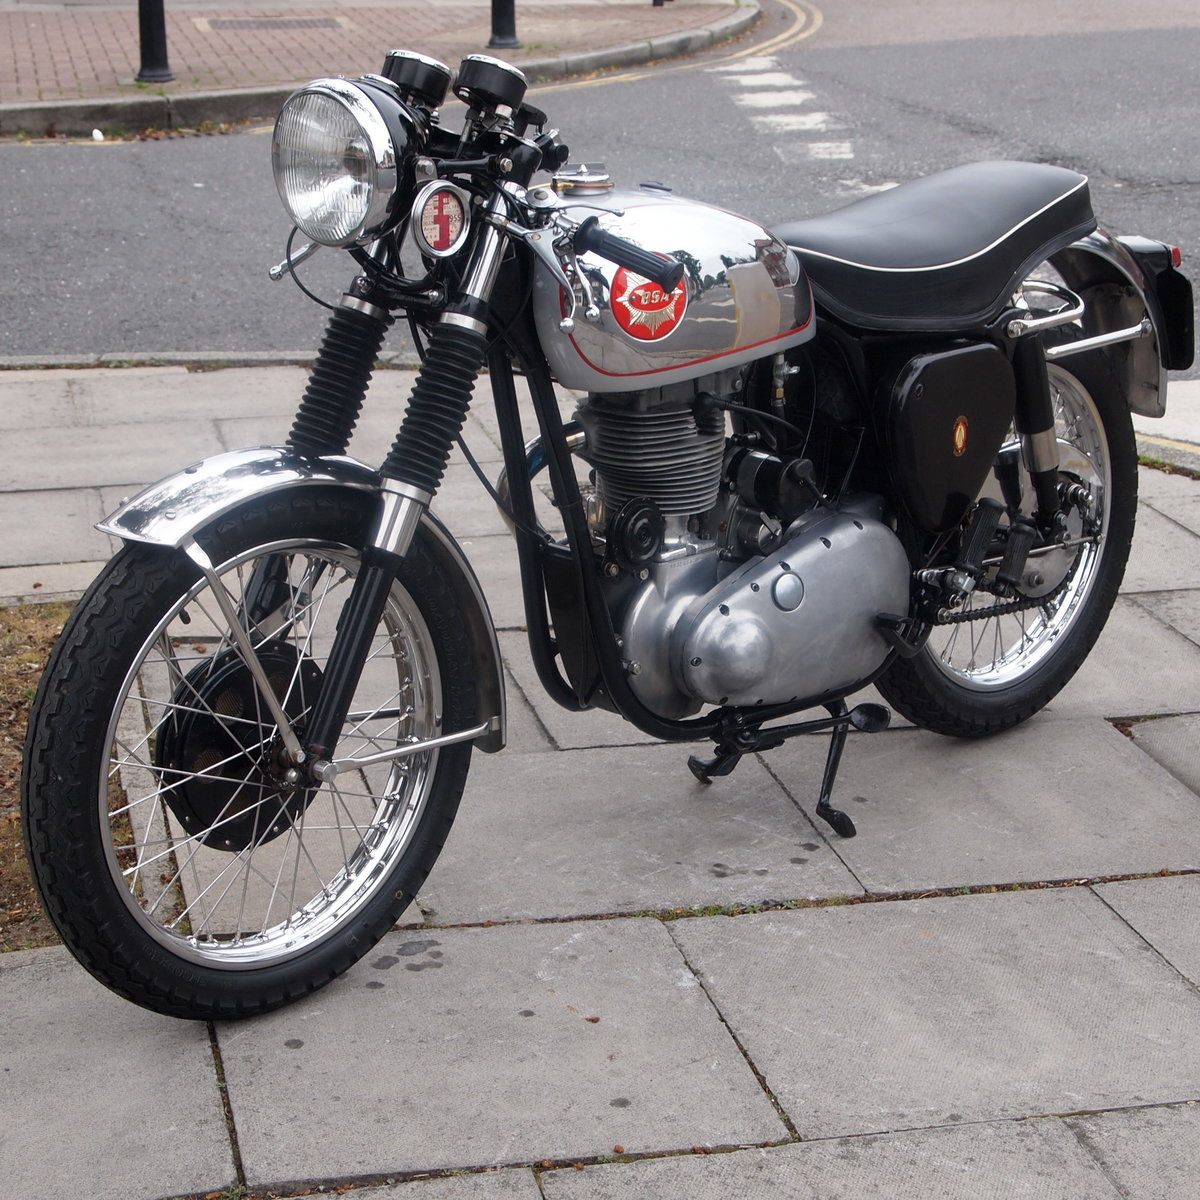 1955 BSA Gold Star 350 With Amal And GP Carb, Nice Motorcycle. For Sale (picture 6 of 6)